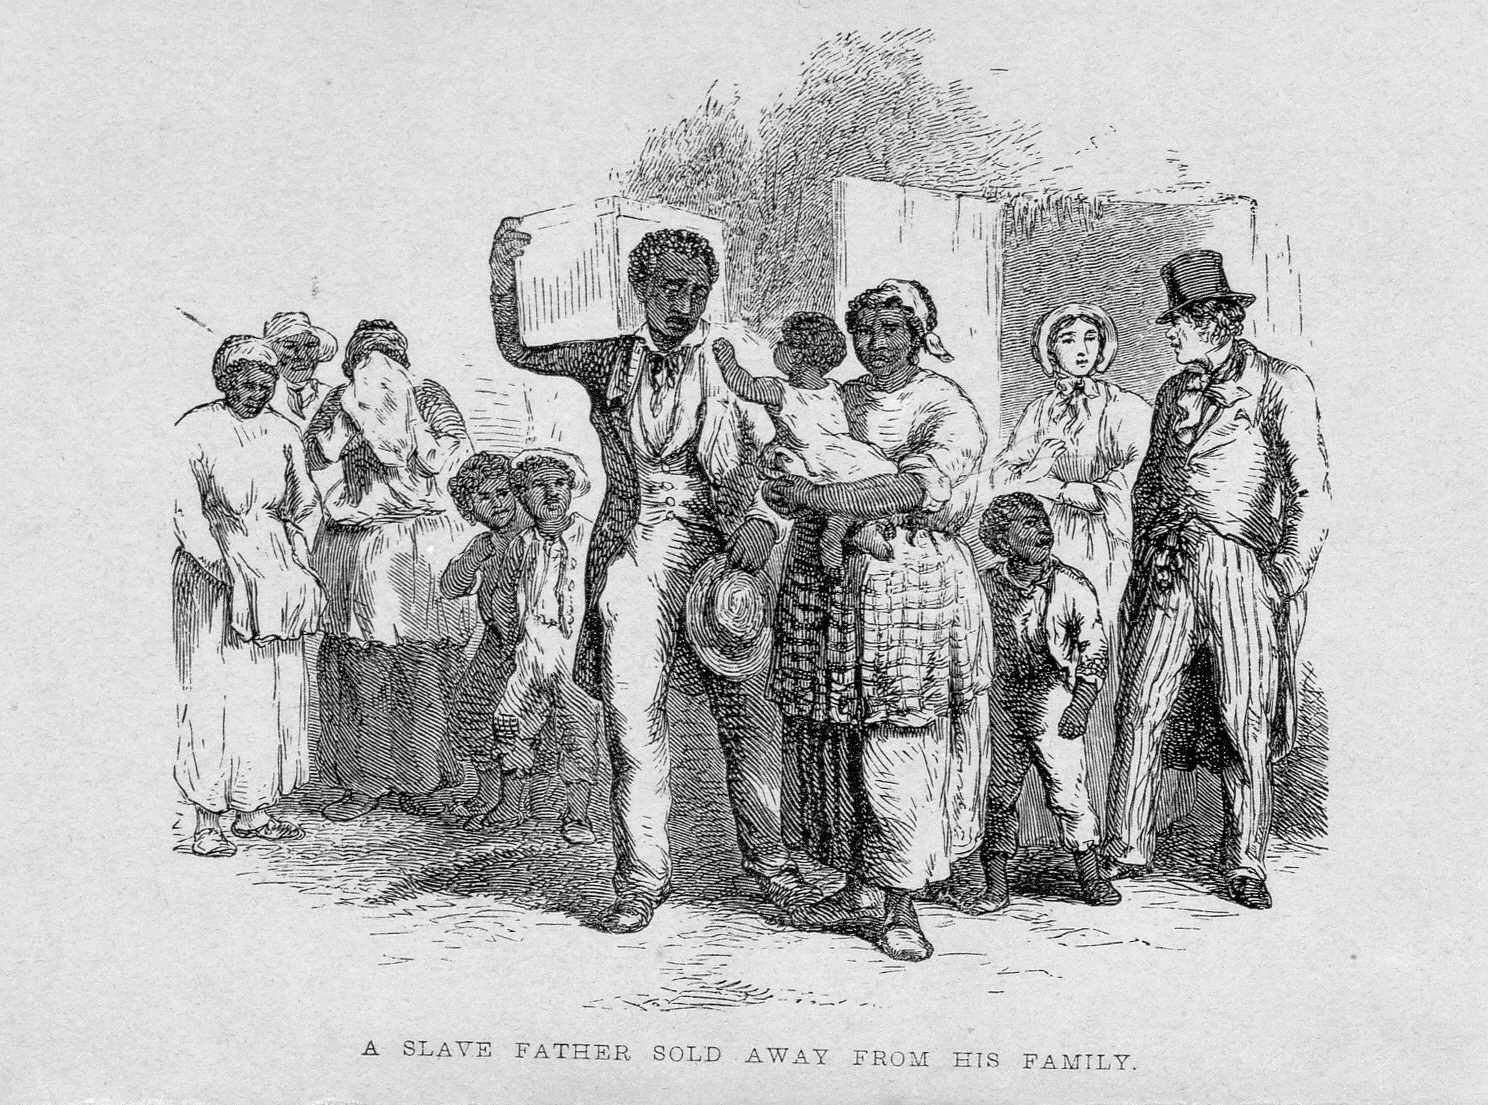 27f. The Southern Argument for Slavery